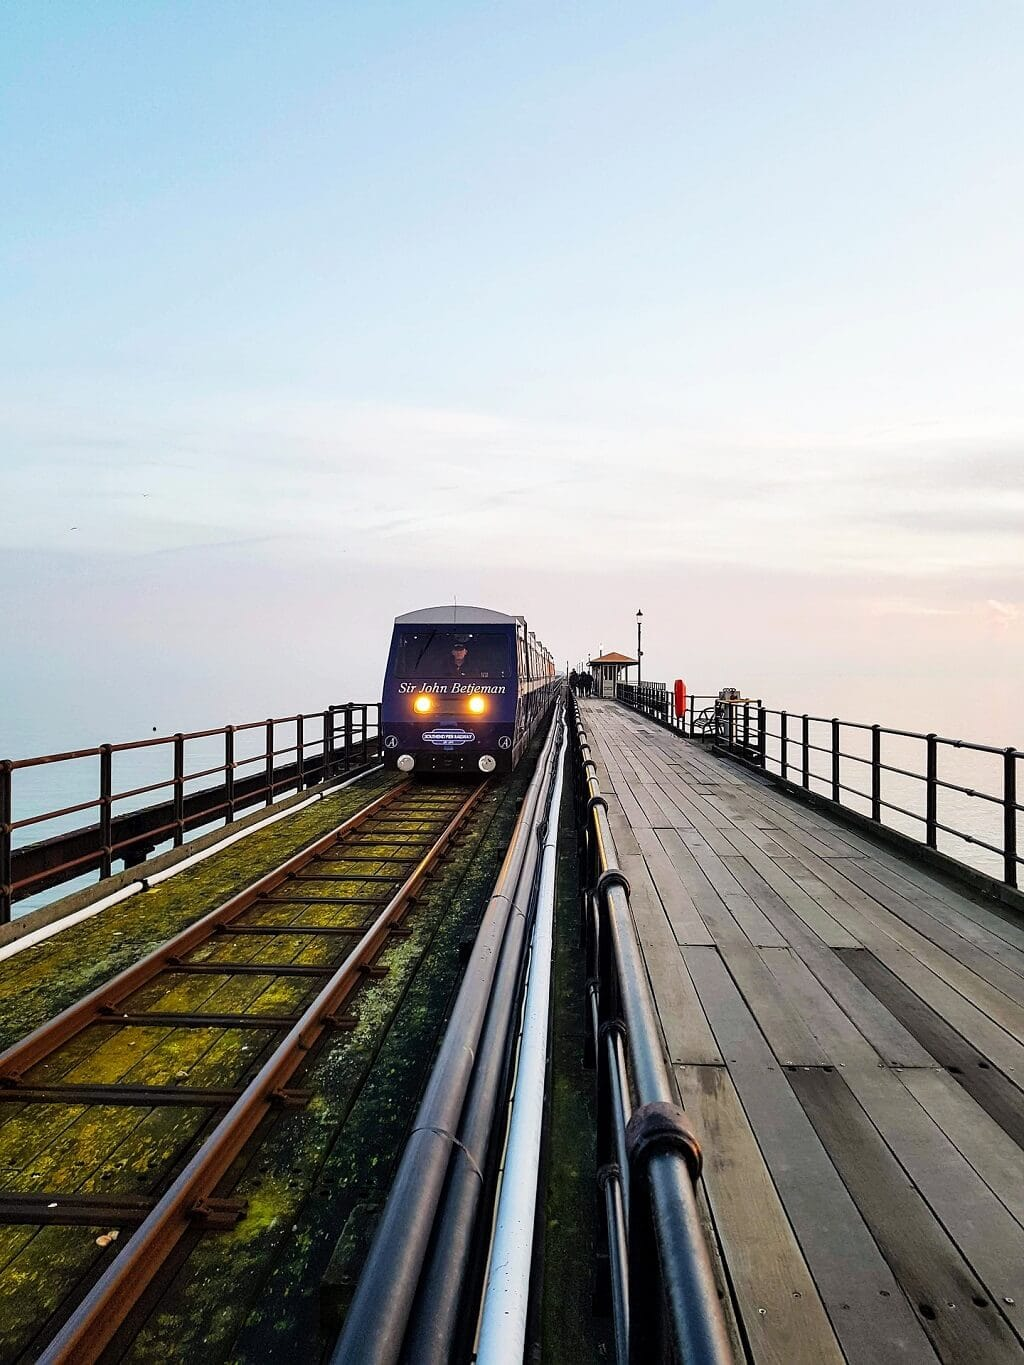 train that goes from one end of southend-on-sea pier to the other